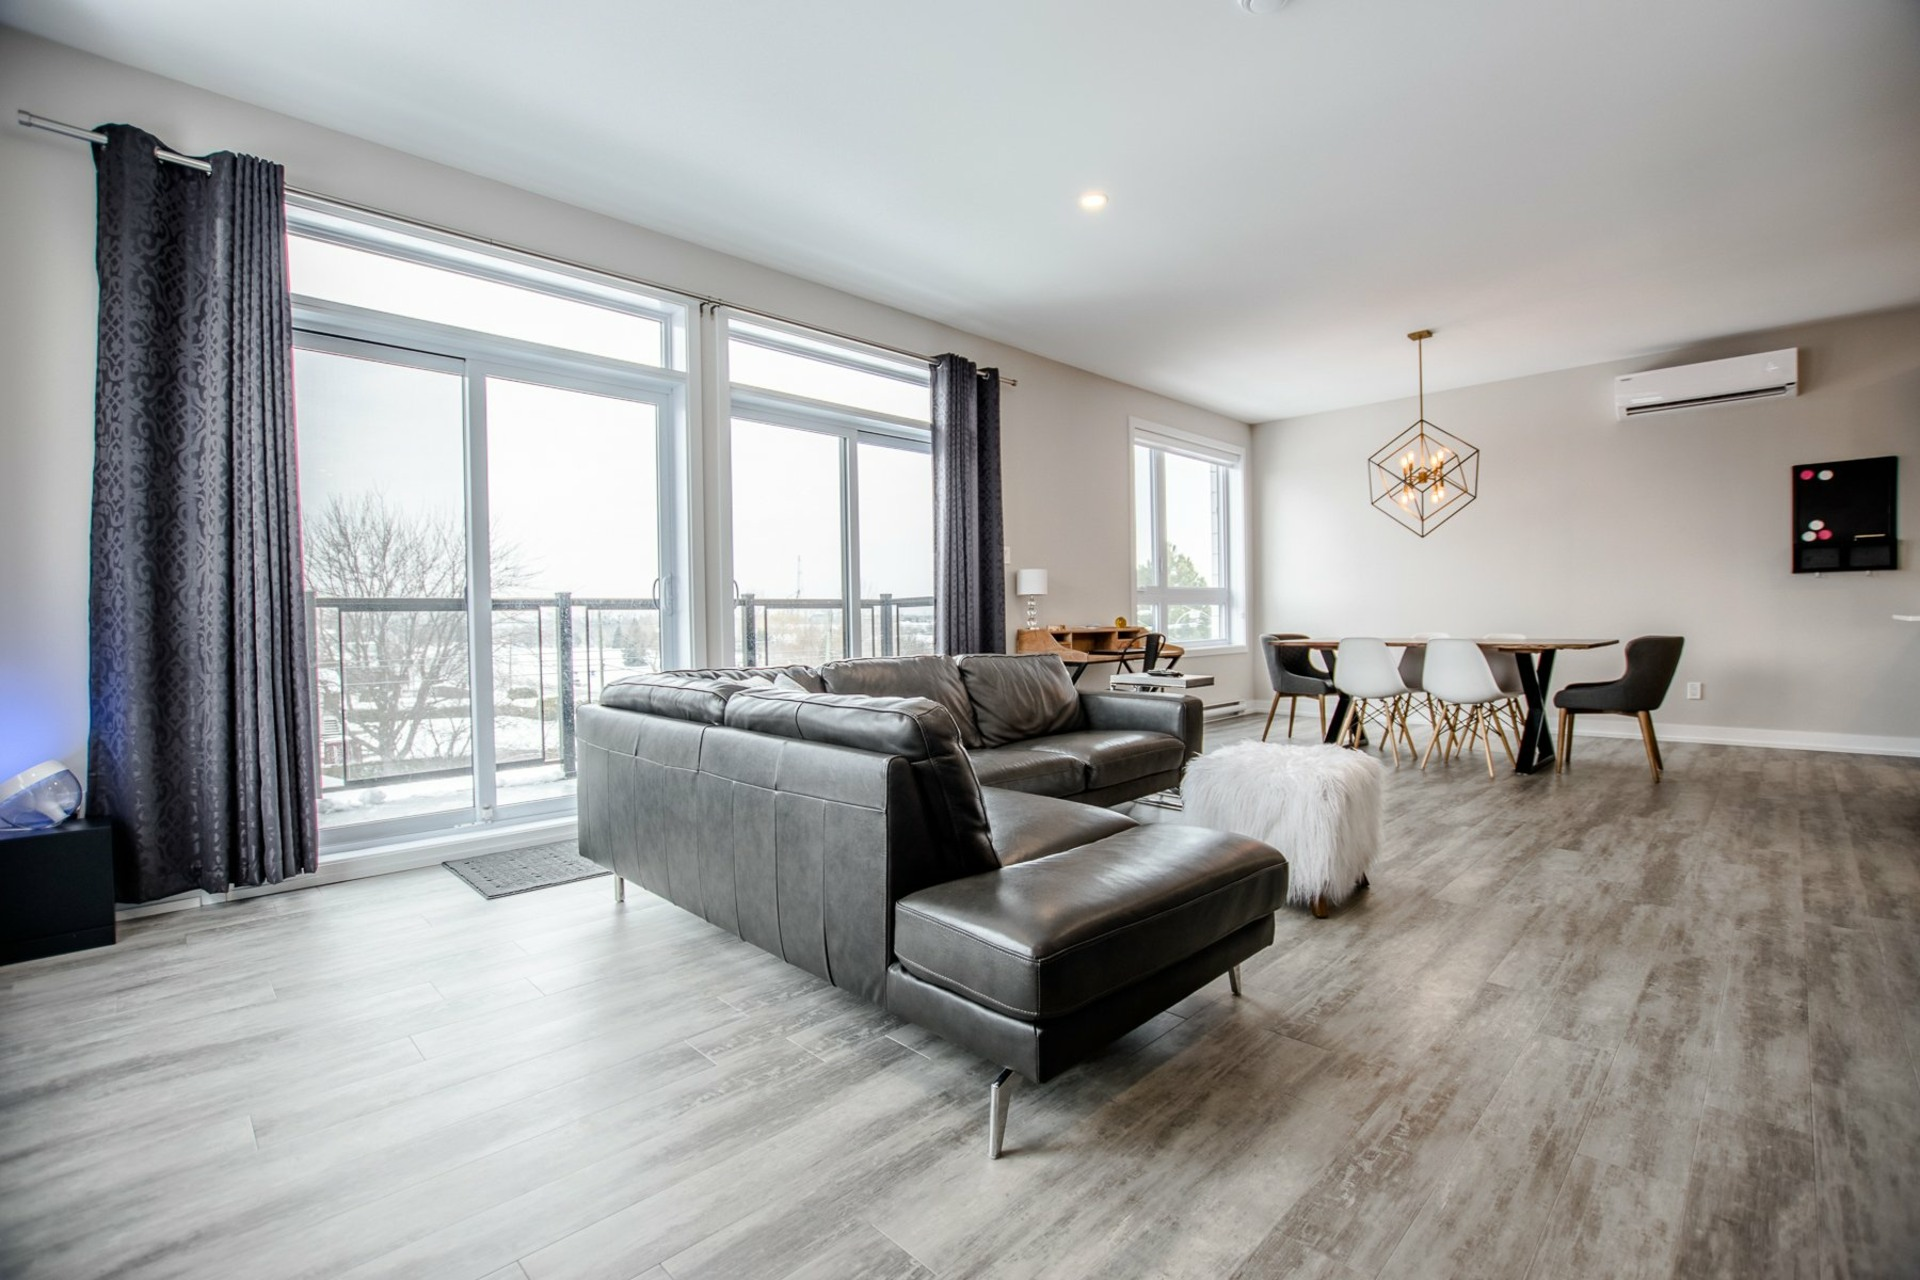 image 7 - Apartment For sale Sainte-Catherine - 6 rooms